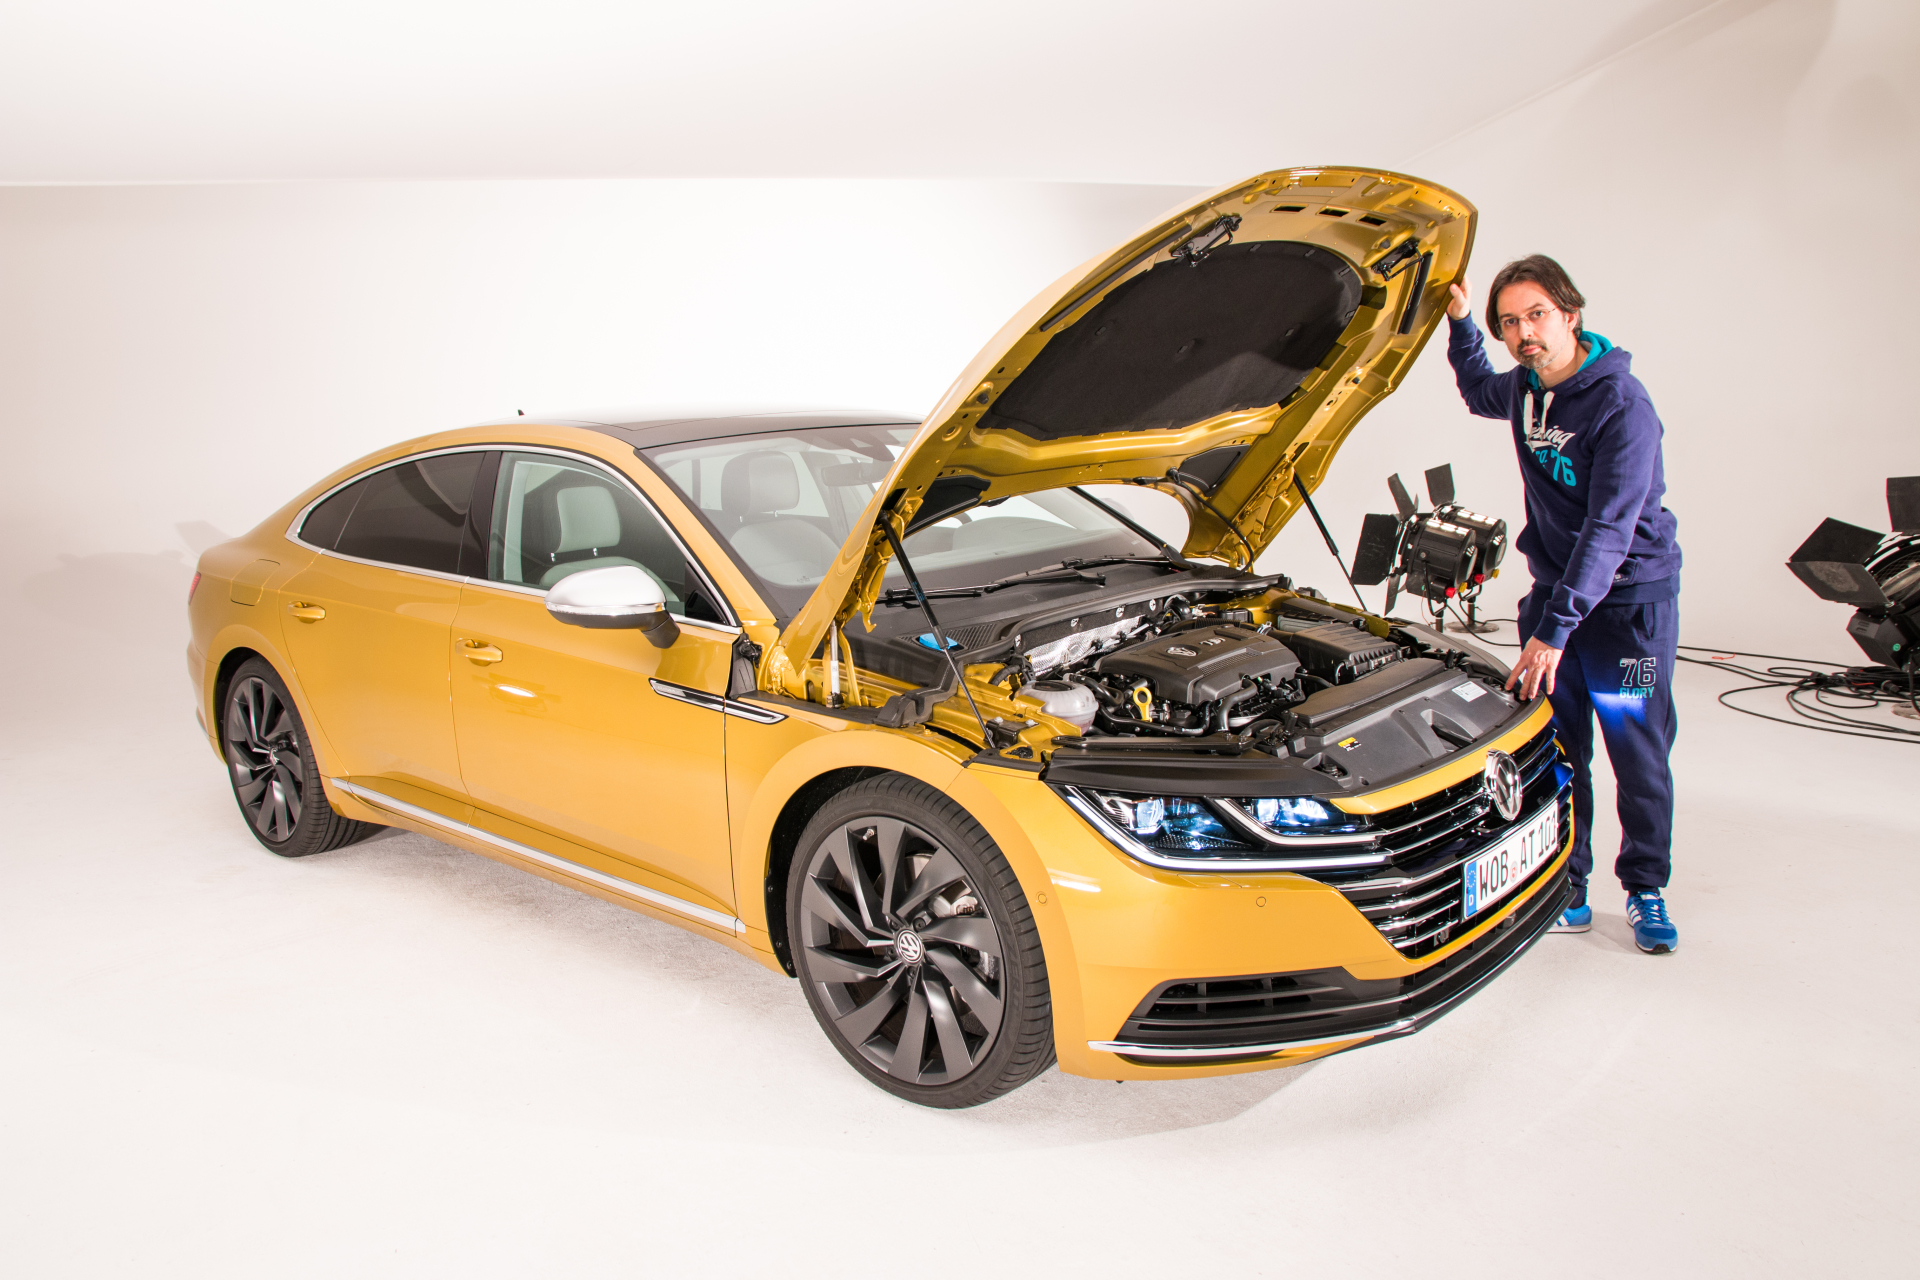 volkswagen arteon d couvrez ses trois personnalit s en vid o photo 2 l 39 argus. Black Bedroom Furniture Sets. Home Design Ideas